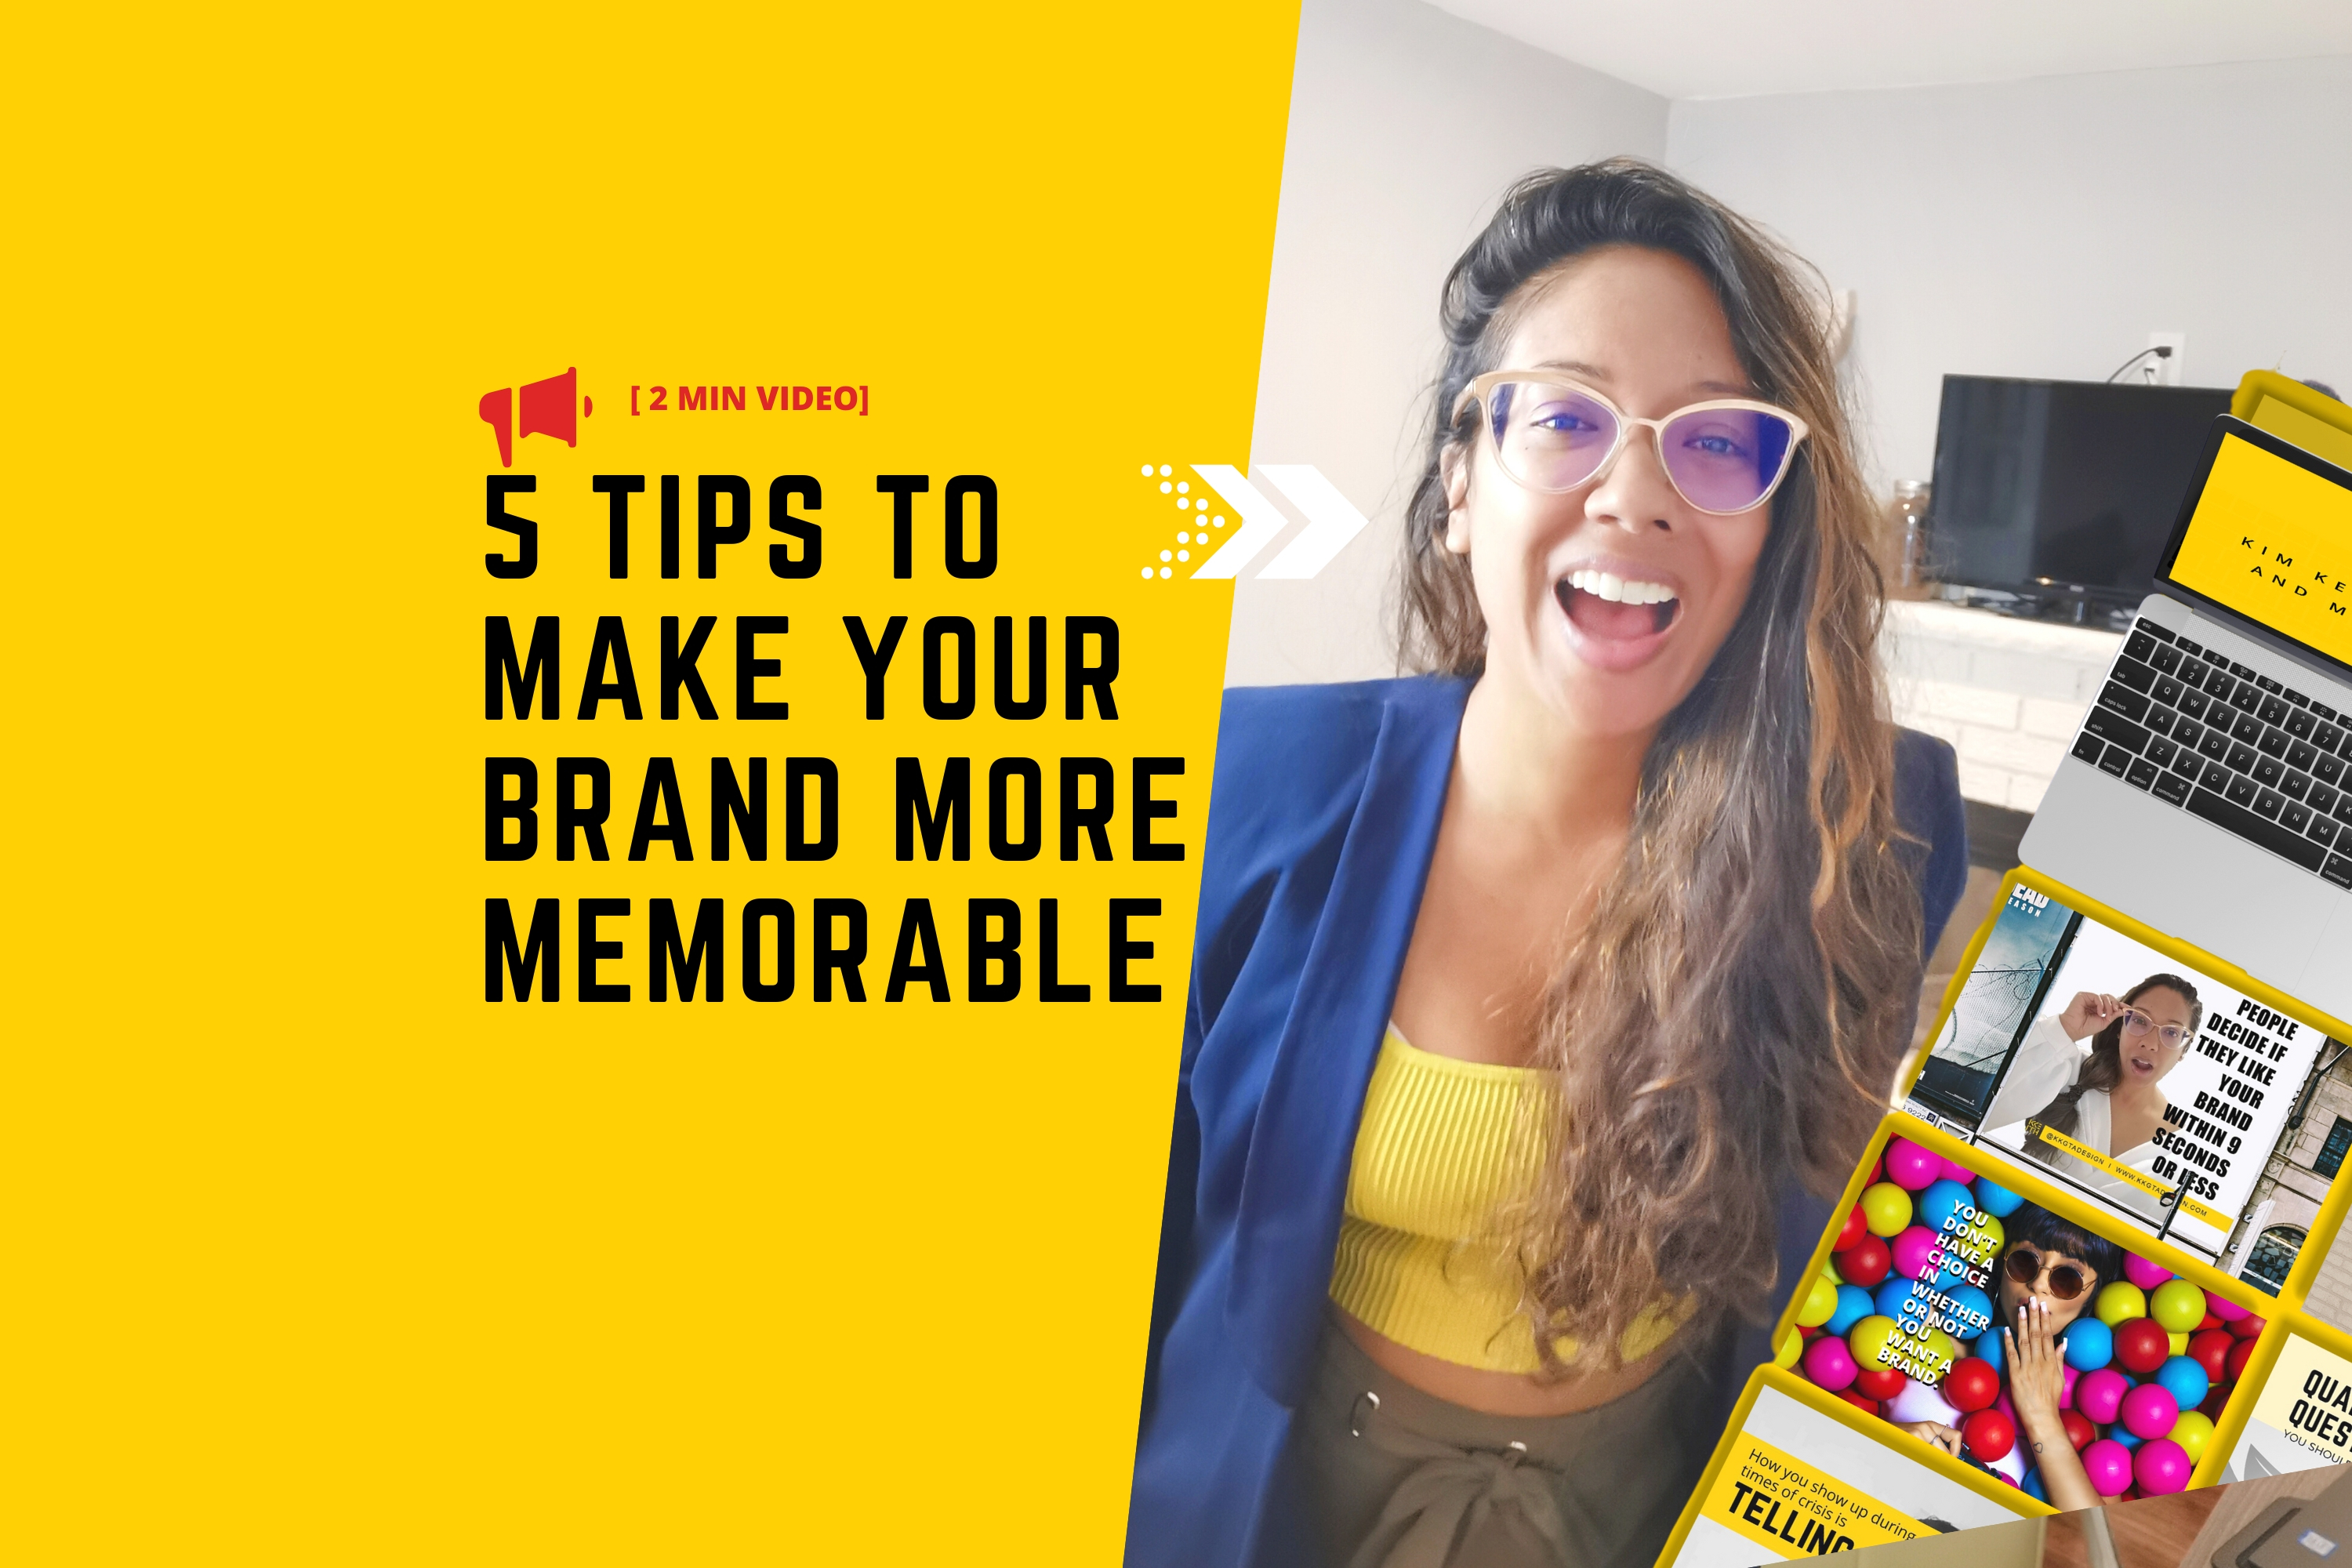 [VIDEO] 5 TIPS TO MAKE YOUR BRAND MORE MEMORABLE